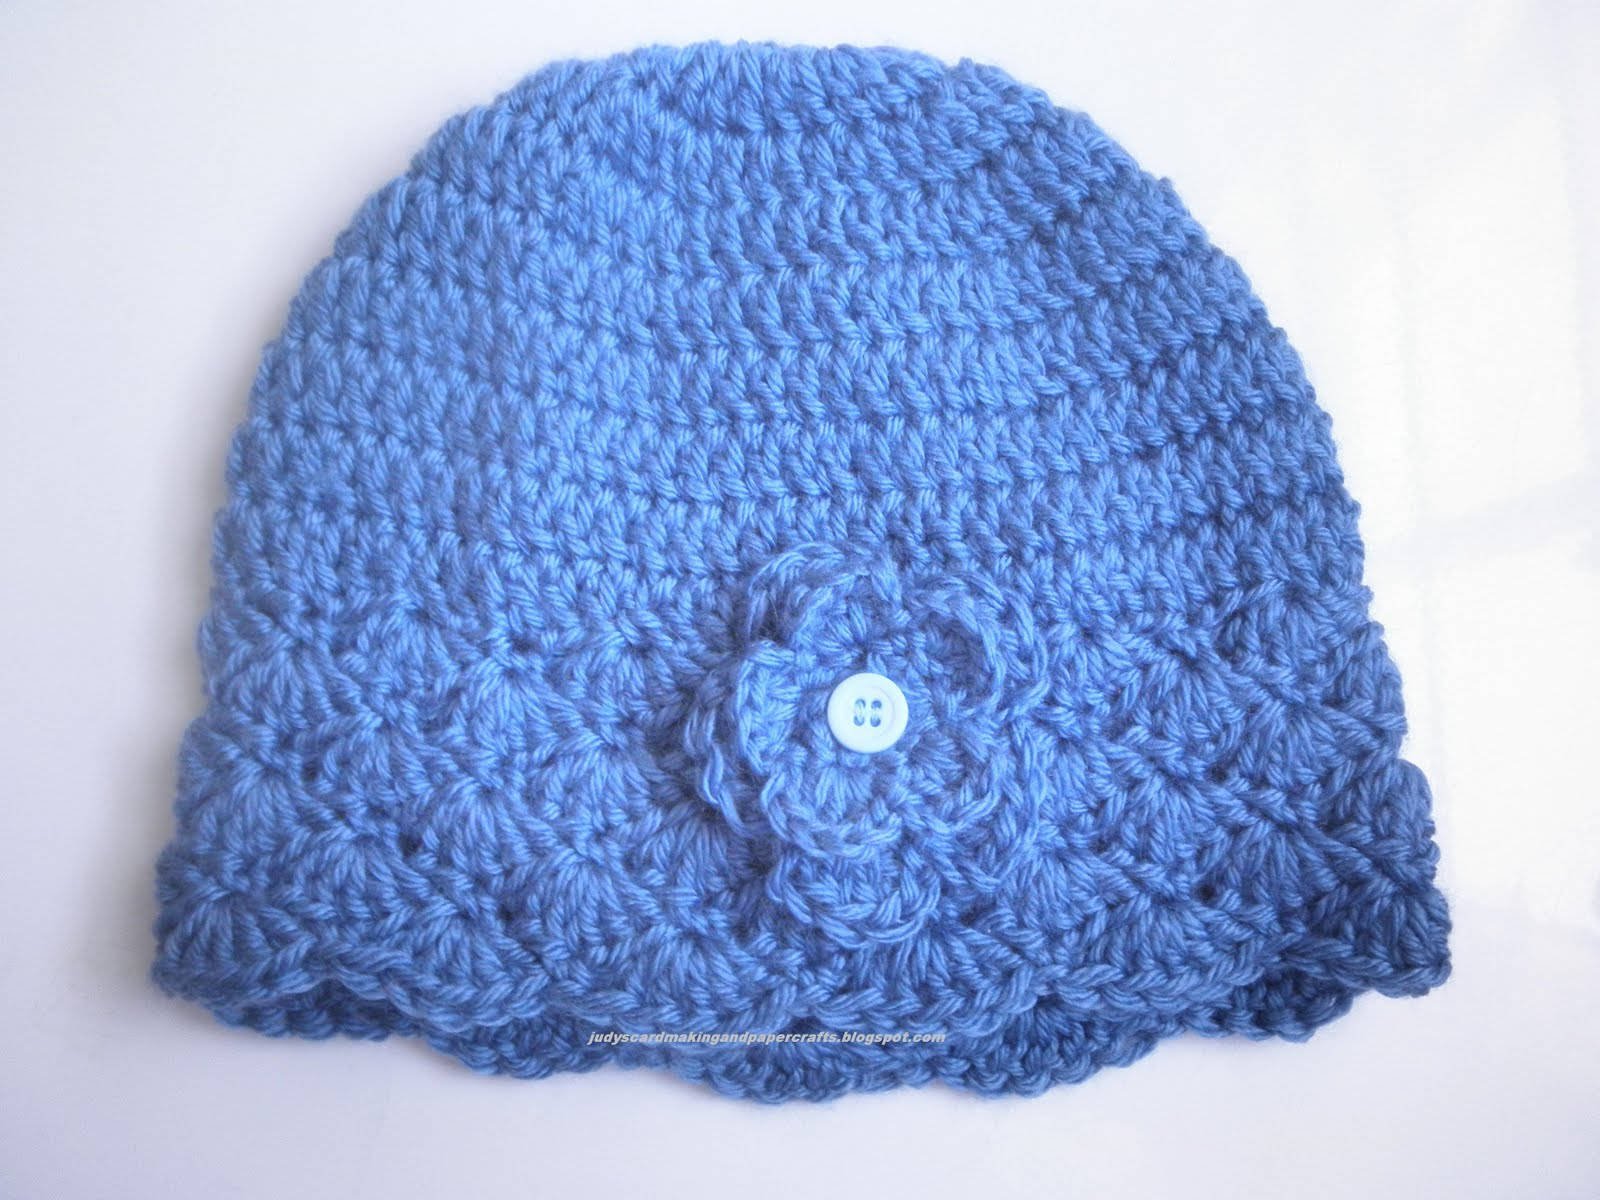 What To Crochet : If you want to make a crochet hat like this. You need to purchase the ...